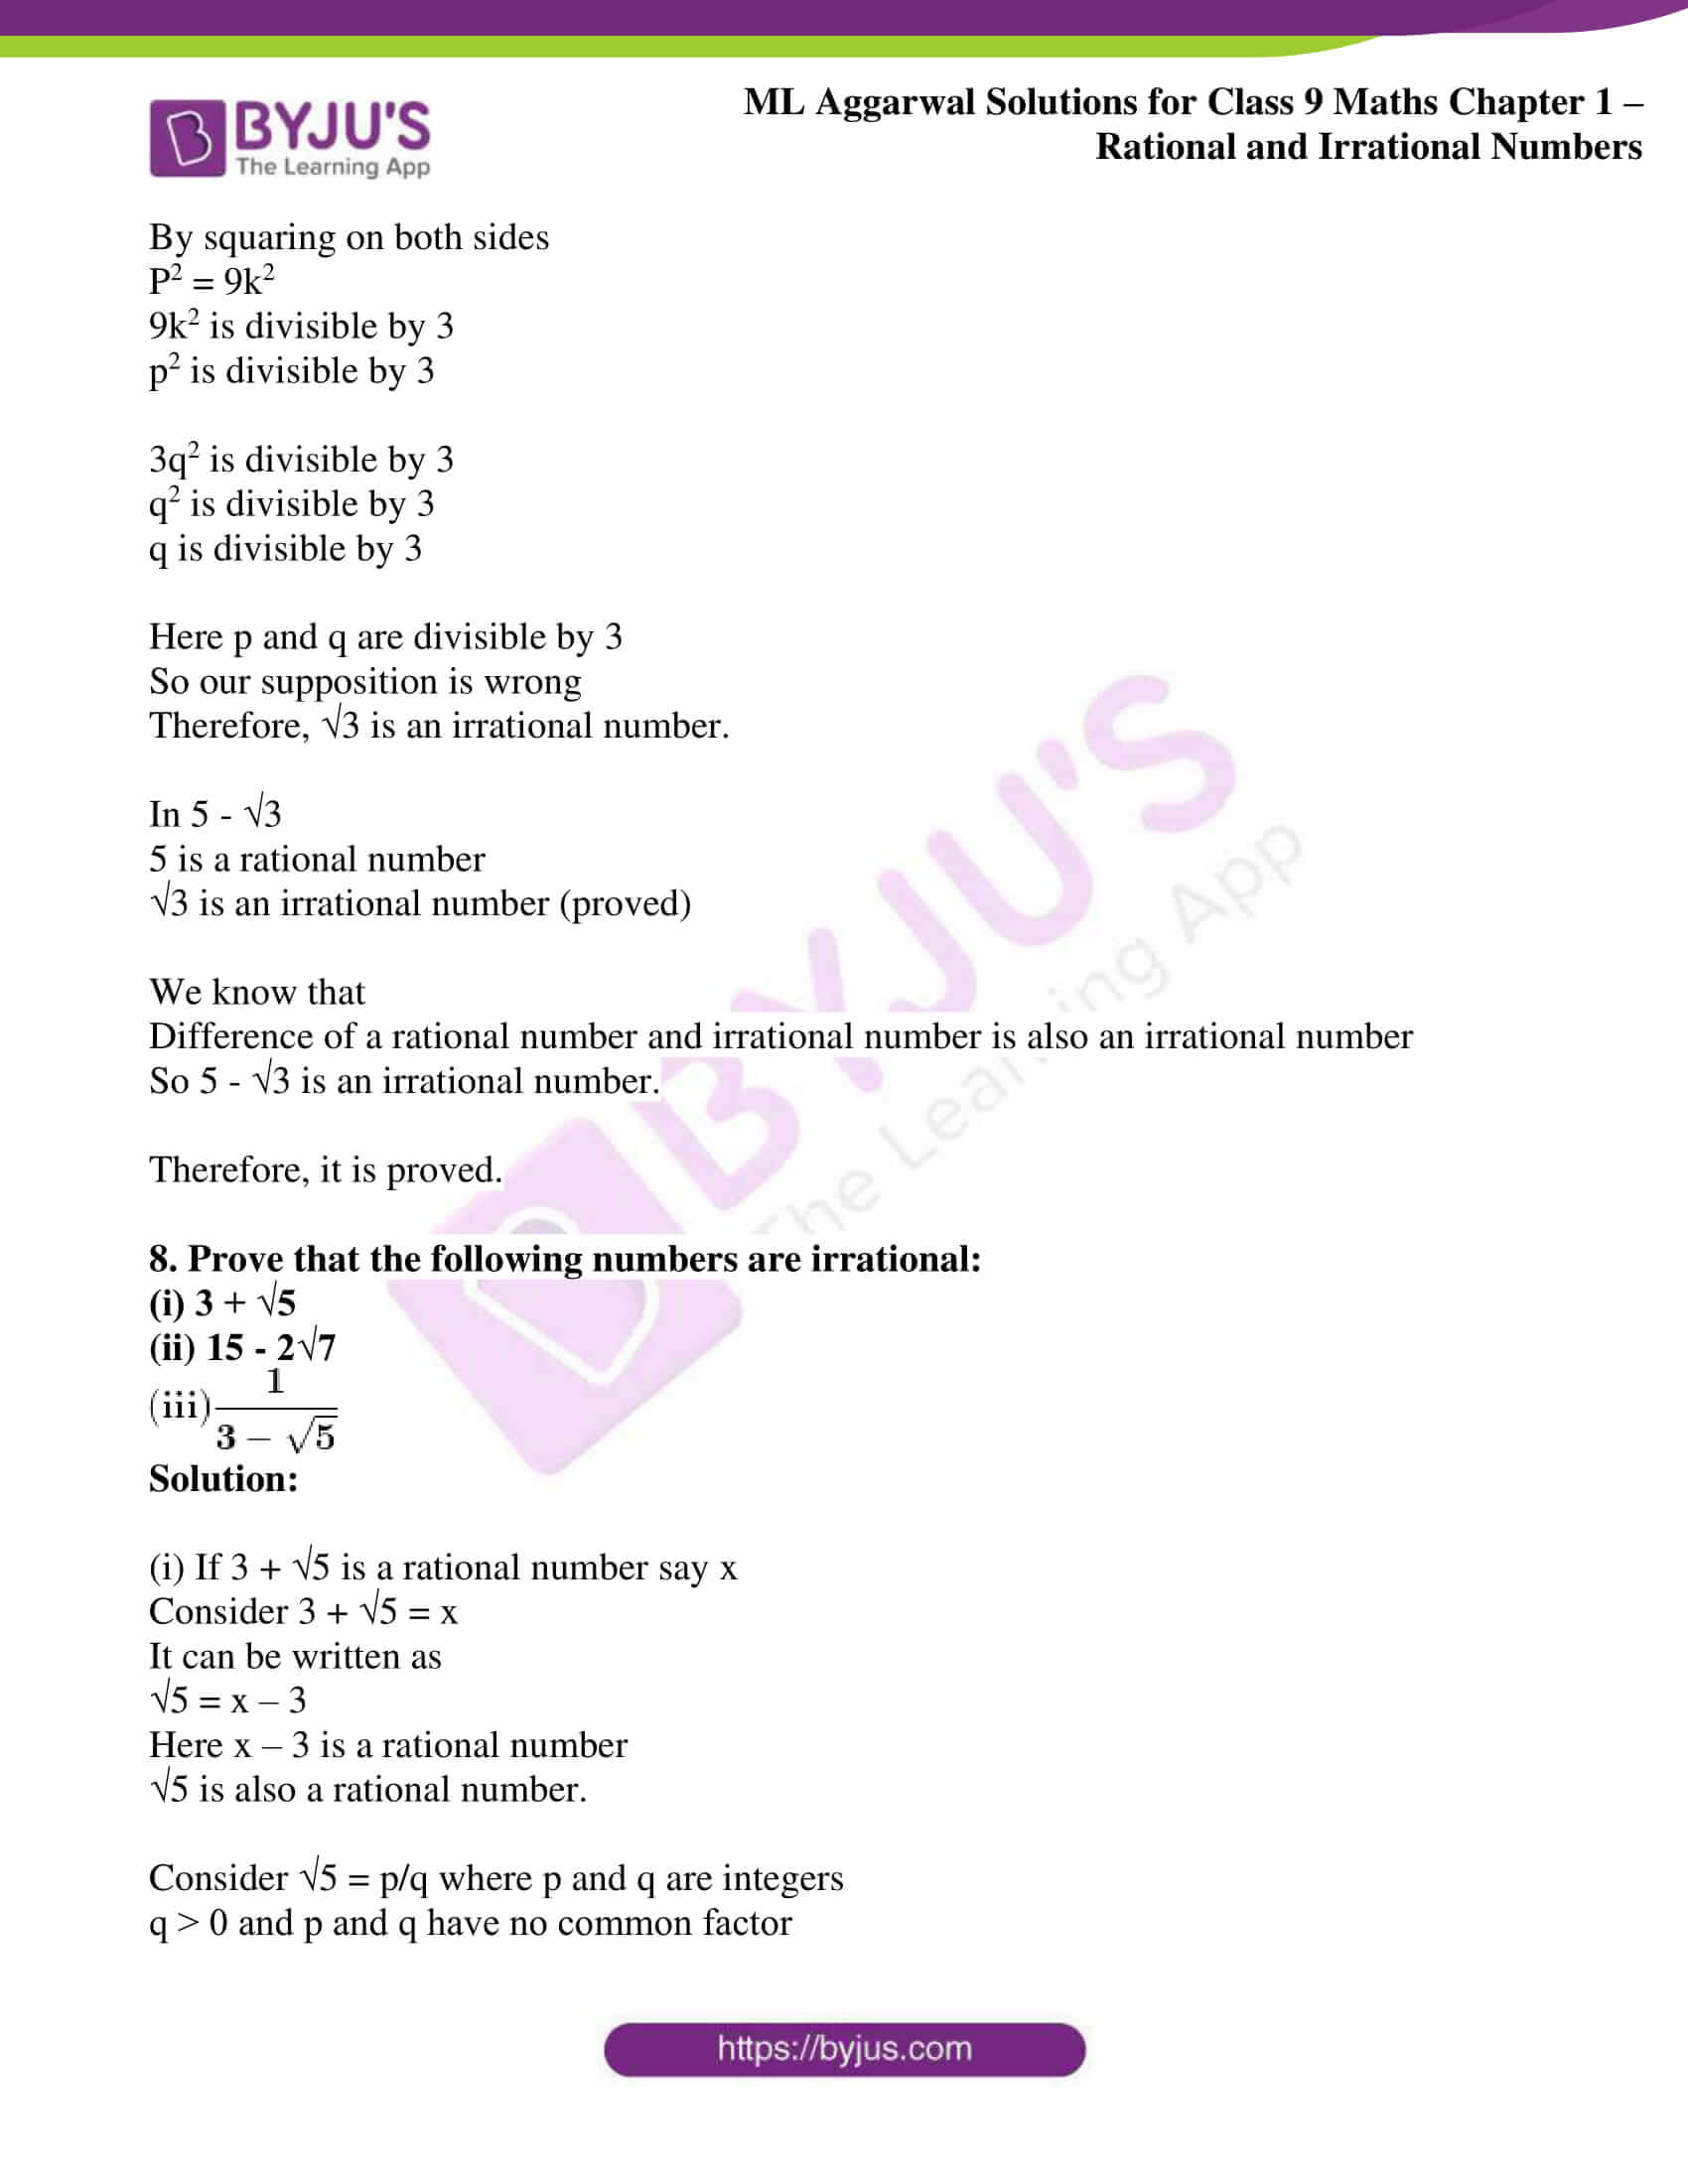 ml aggarwal solutions for class 9 maths chapter 1 67